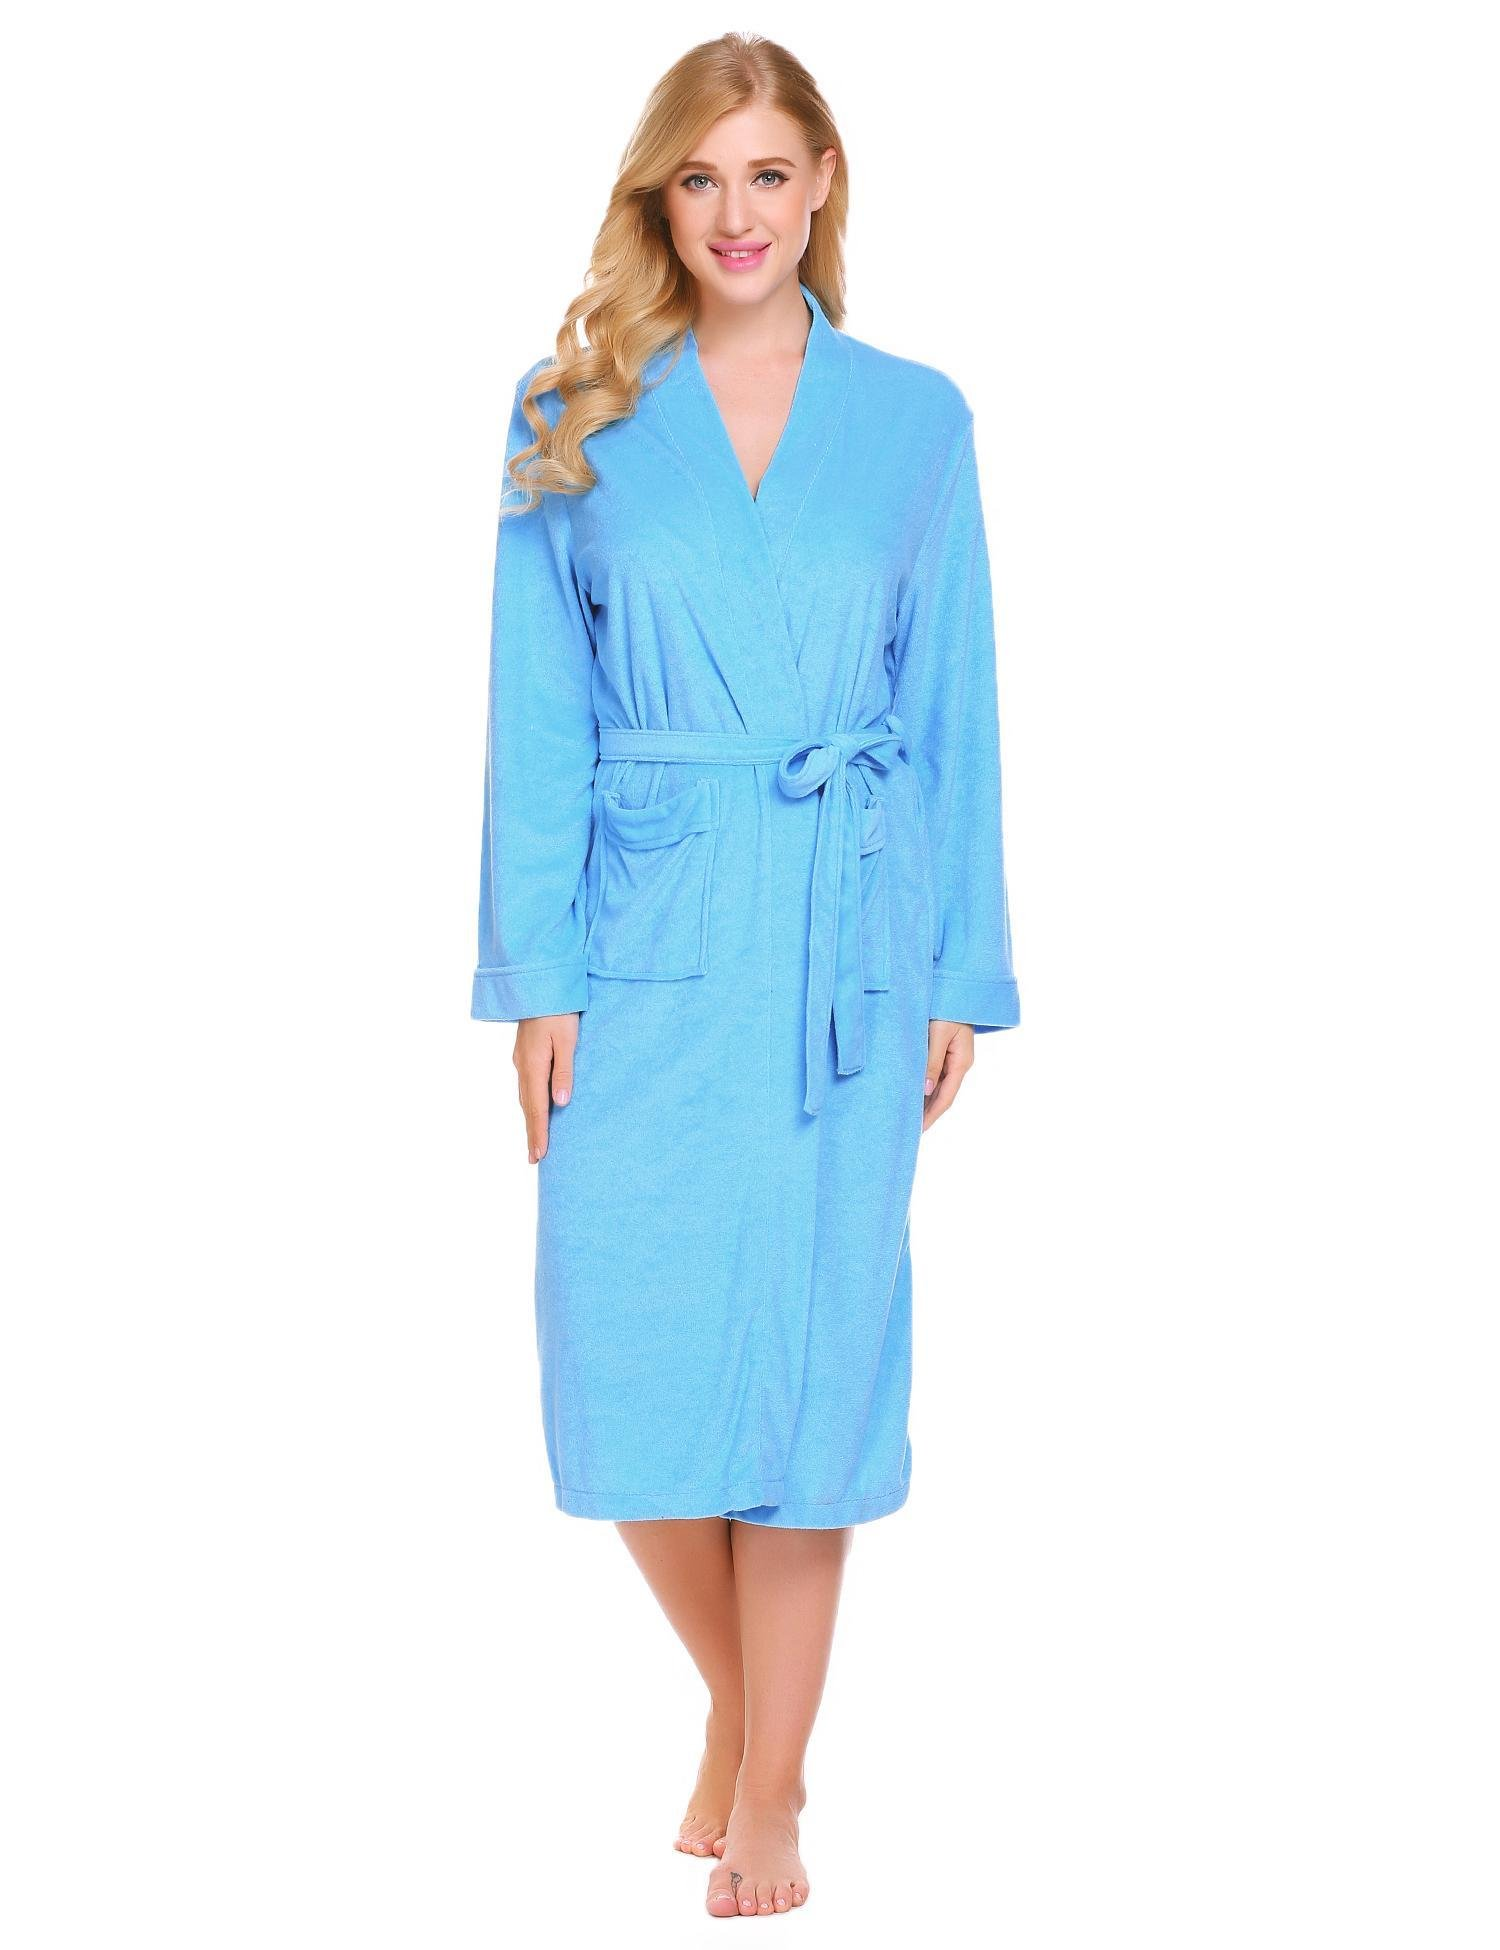 Corgy Women Robe Cotton Terry Lightweigt Belted Kimono Spa Bathrobe with Pockets